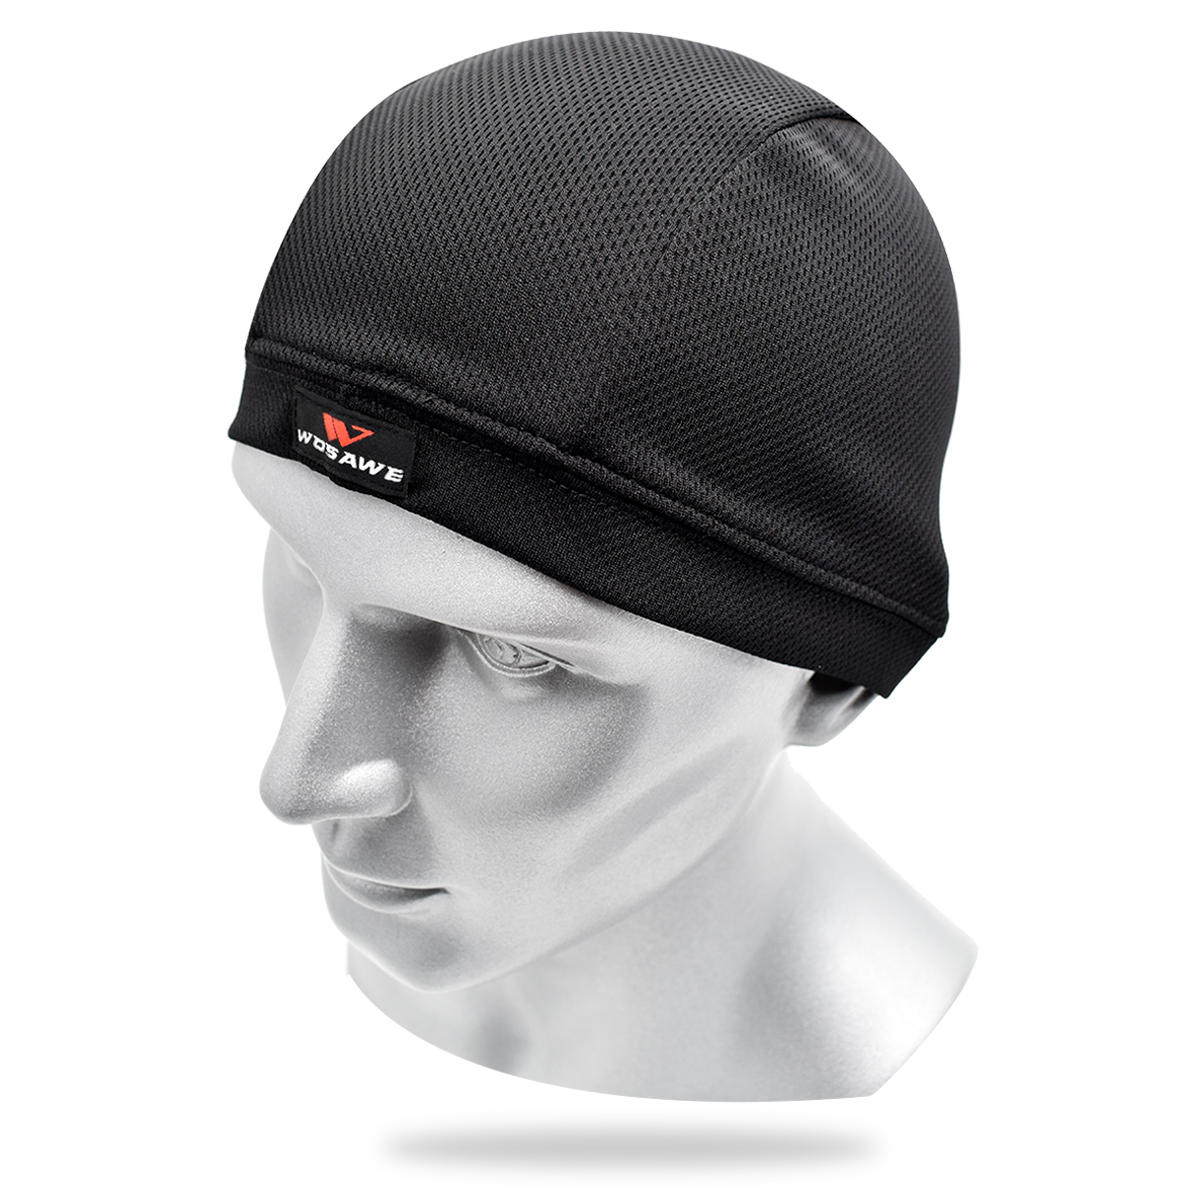 WOSAWE Quick Dry Helmet Inner Hat Anti-fouling Off-road Motorcycle Headgear Hooded Sweat Cap